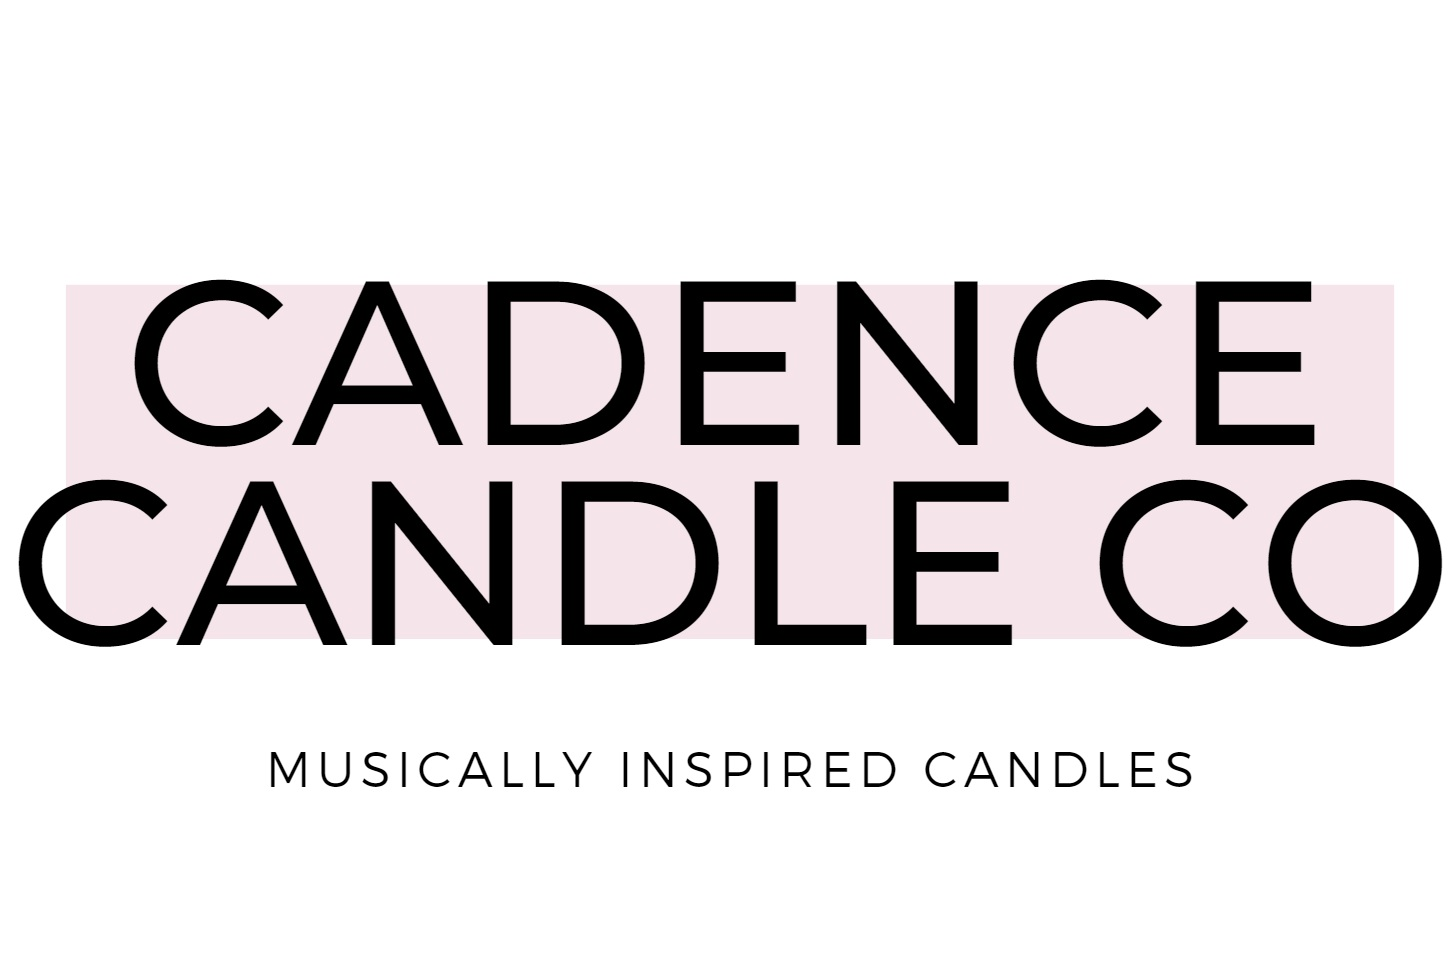 Cadence Candle Co.